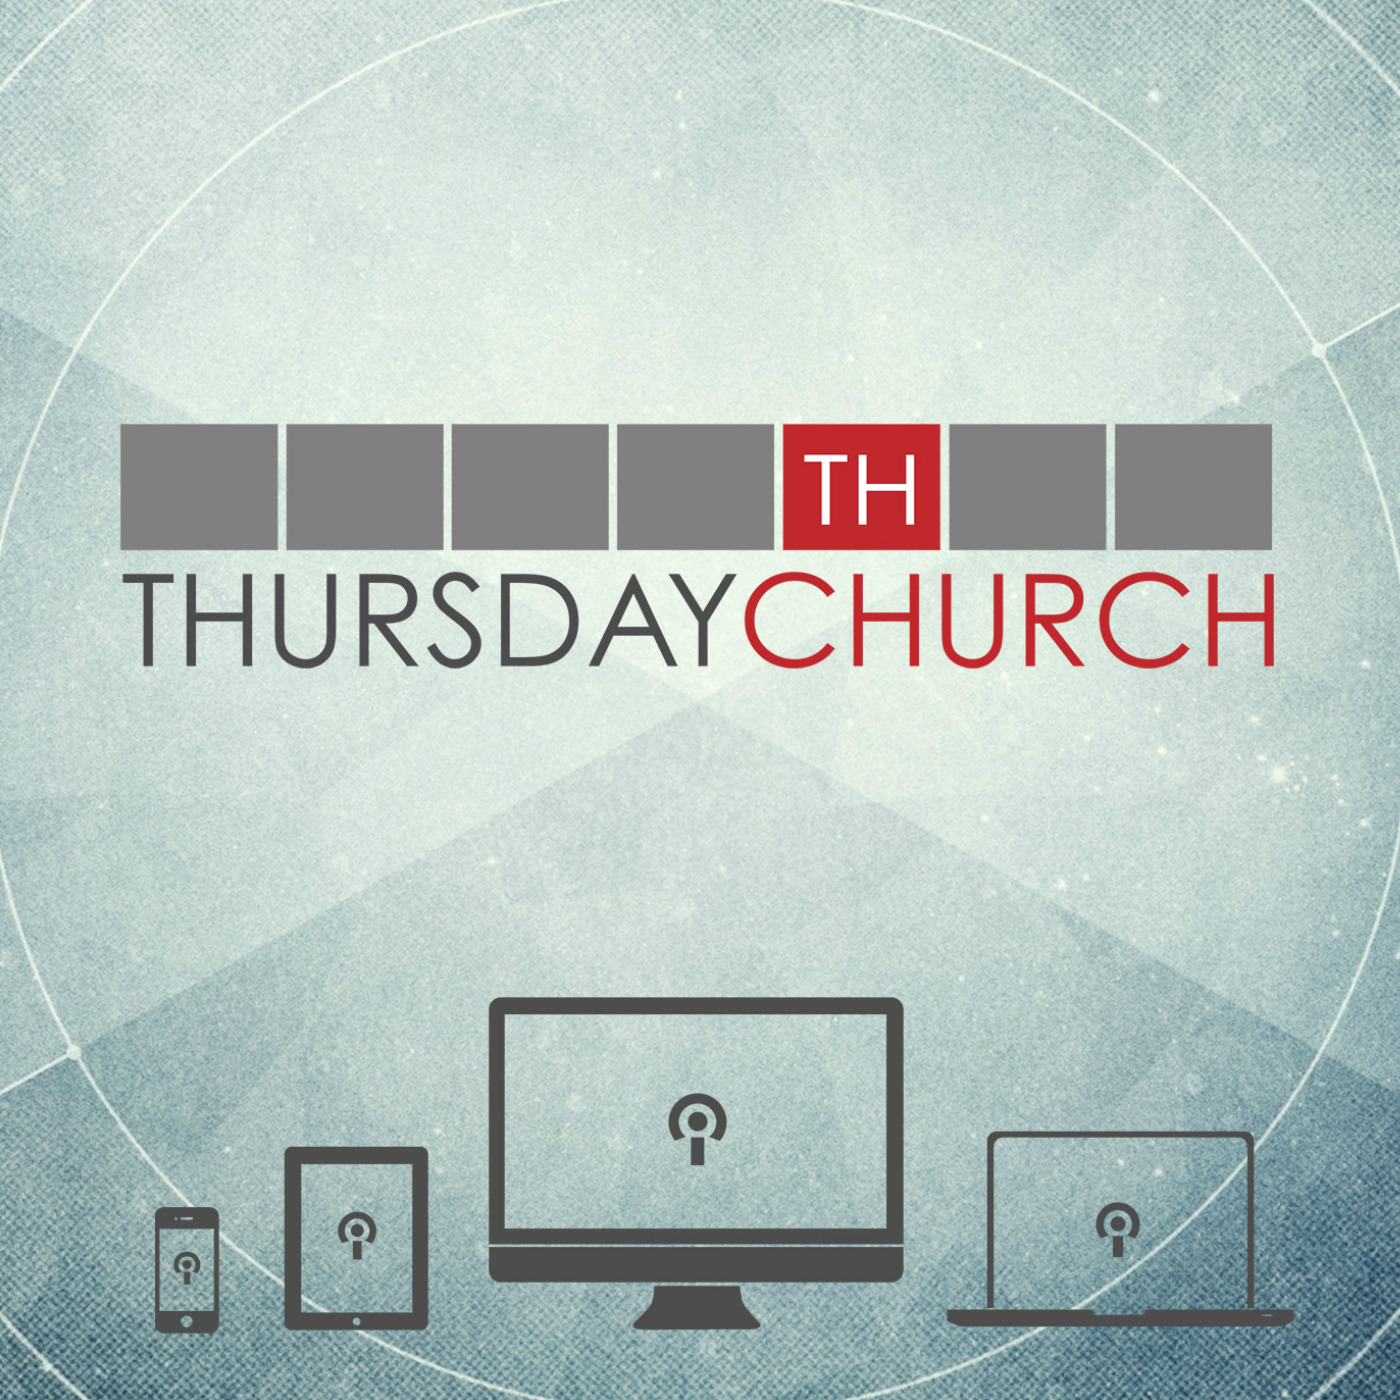 Thursday Church at Judson